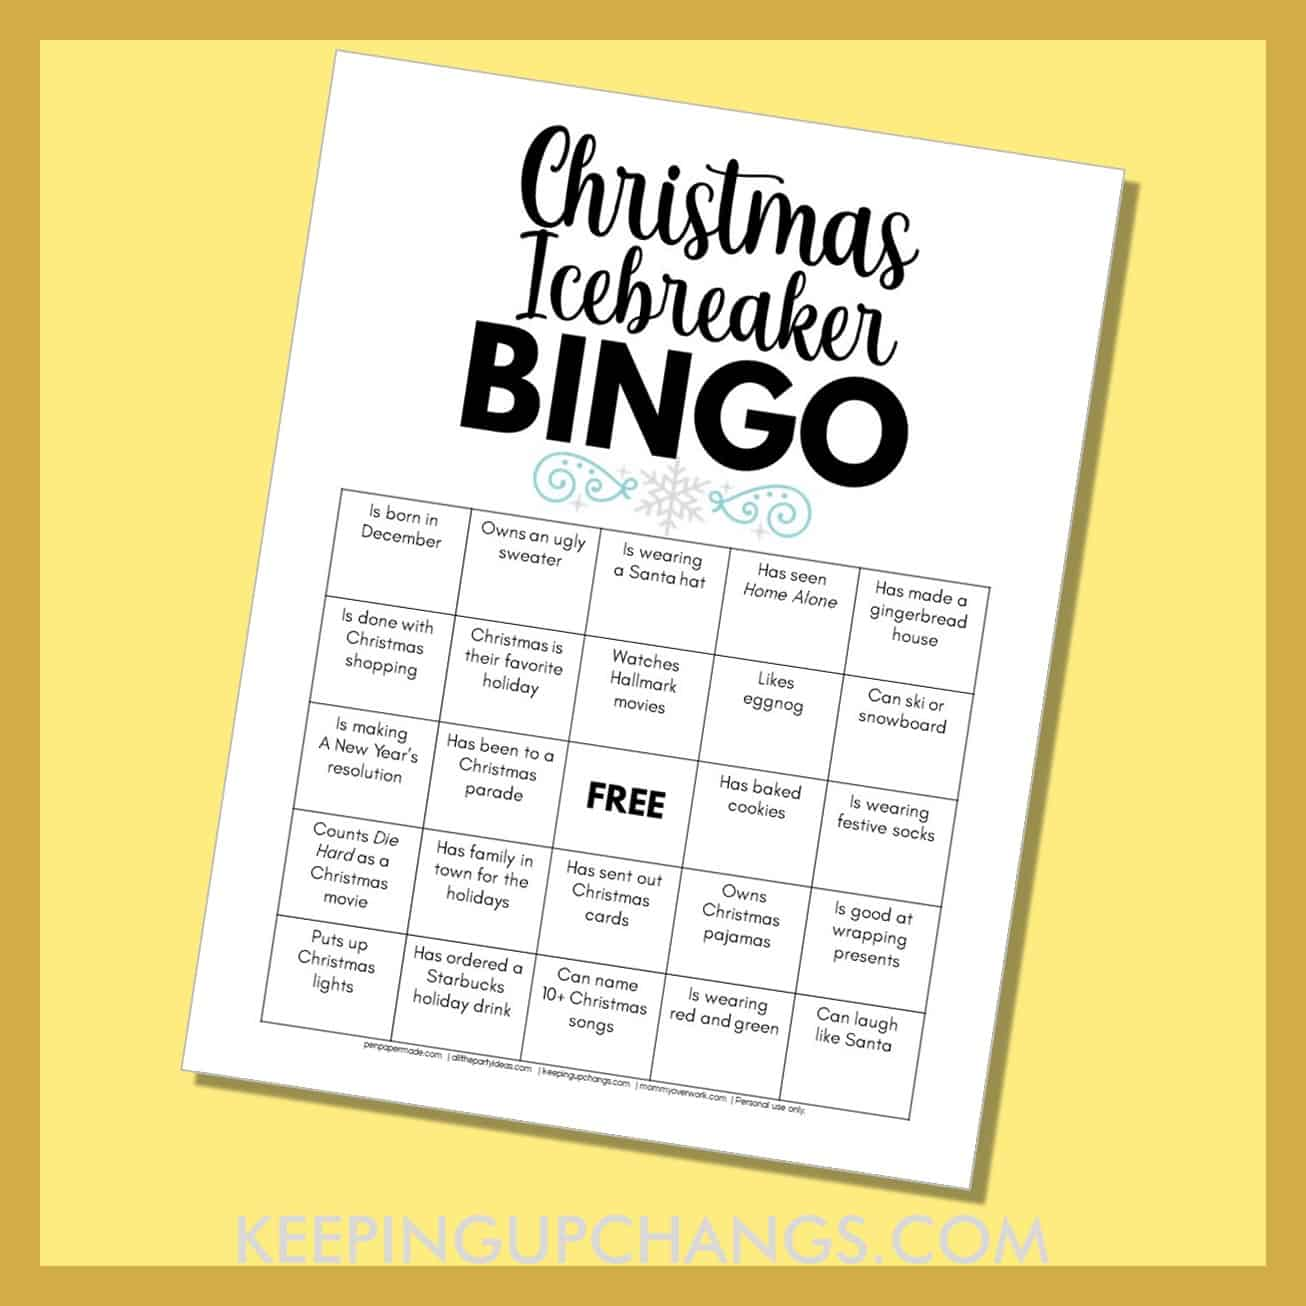 human christmas icebreaker bingo with fun getting to know you facts about the holidays.